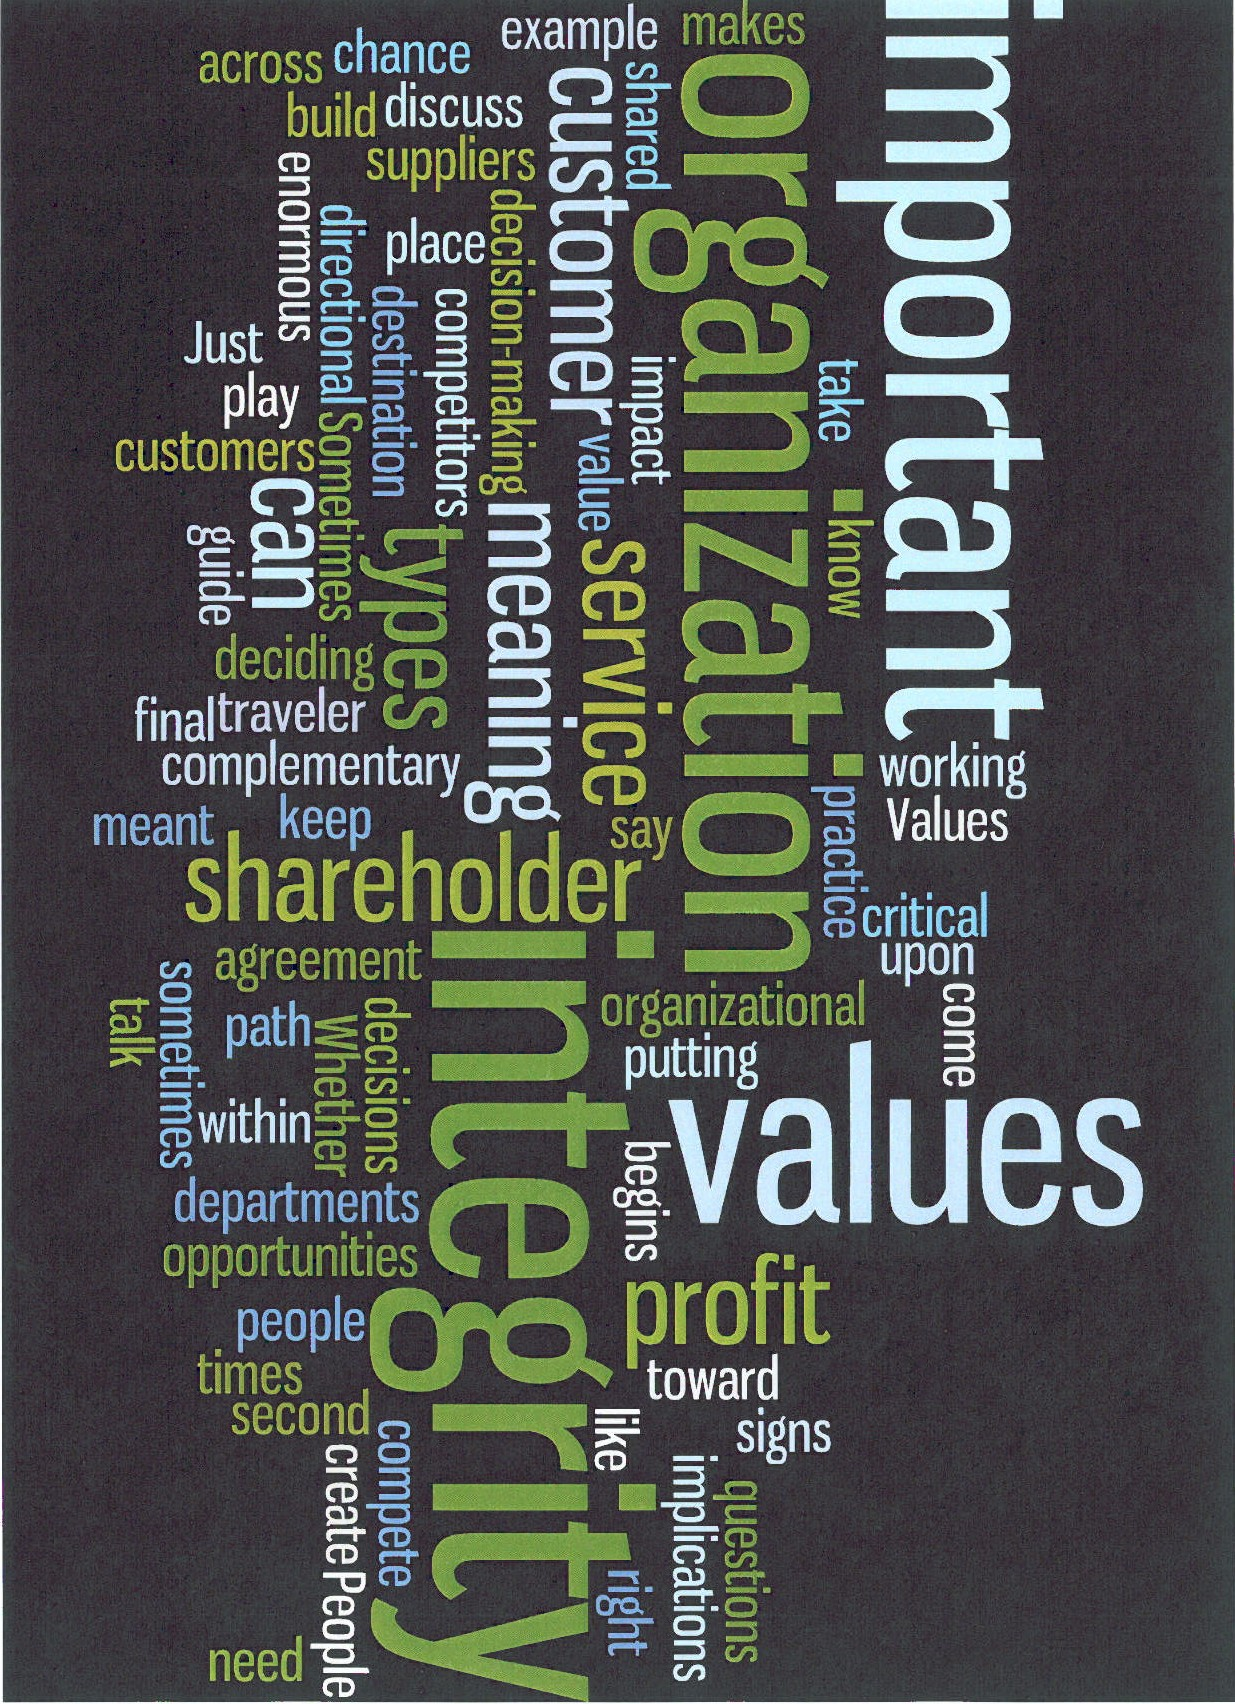 the value of values ideas the firefly group artwork created at wordle net